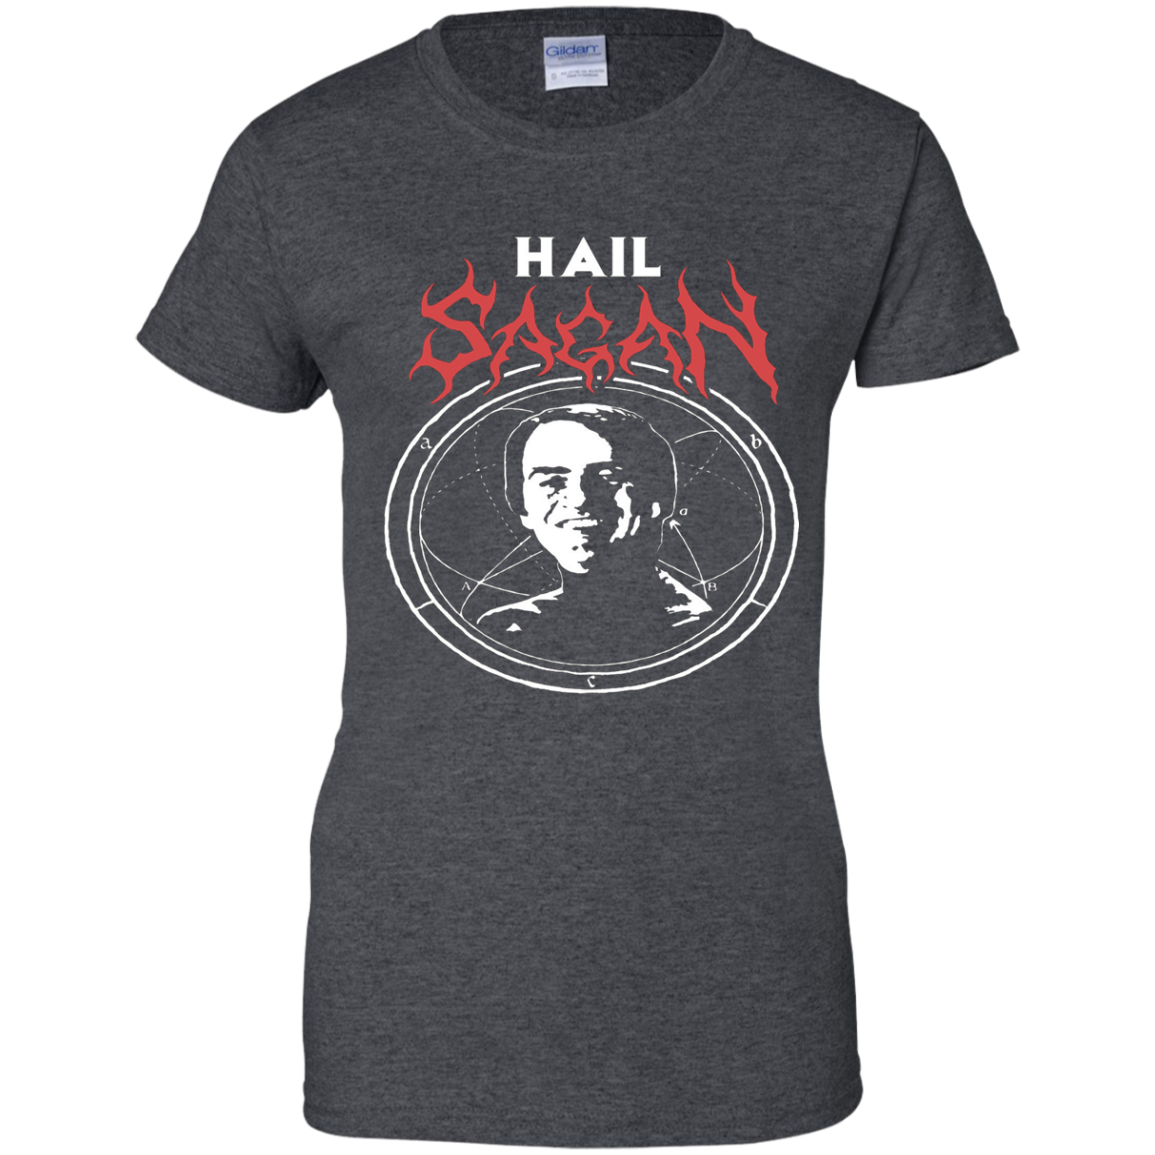 HAIL SAGAN Shirt